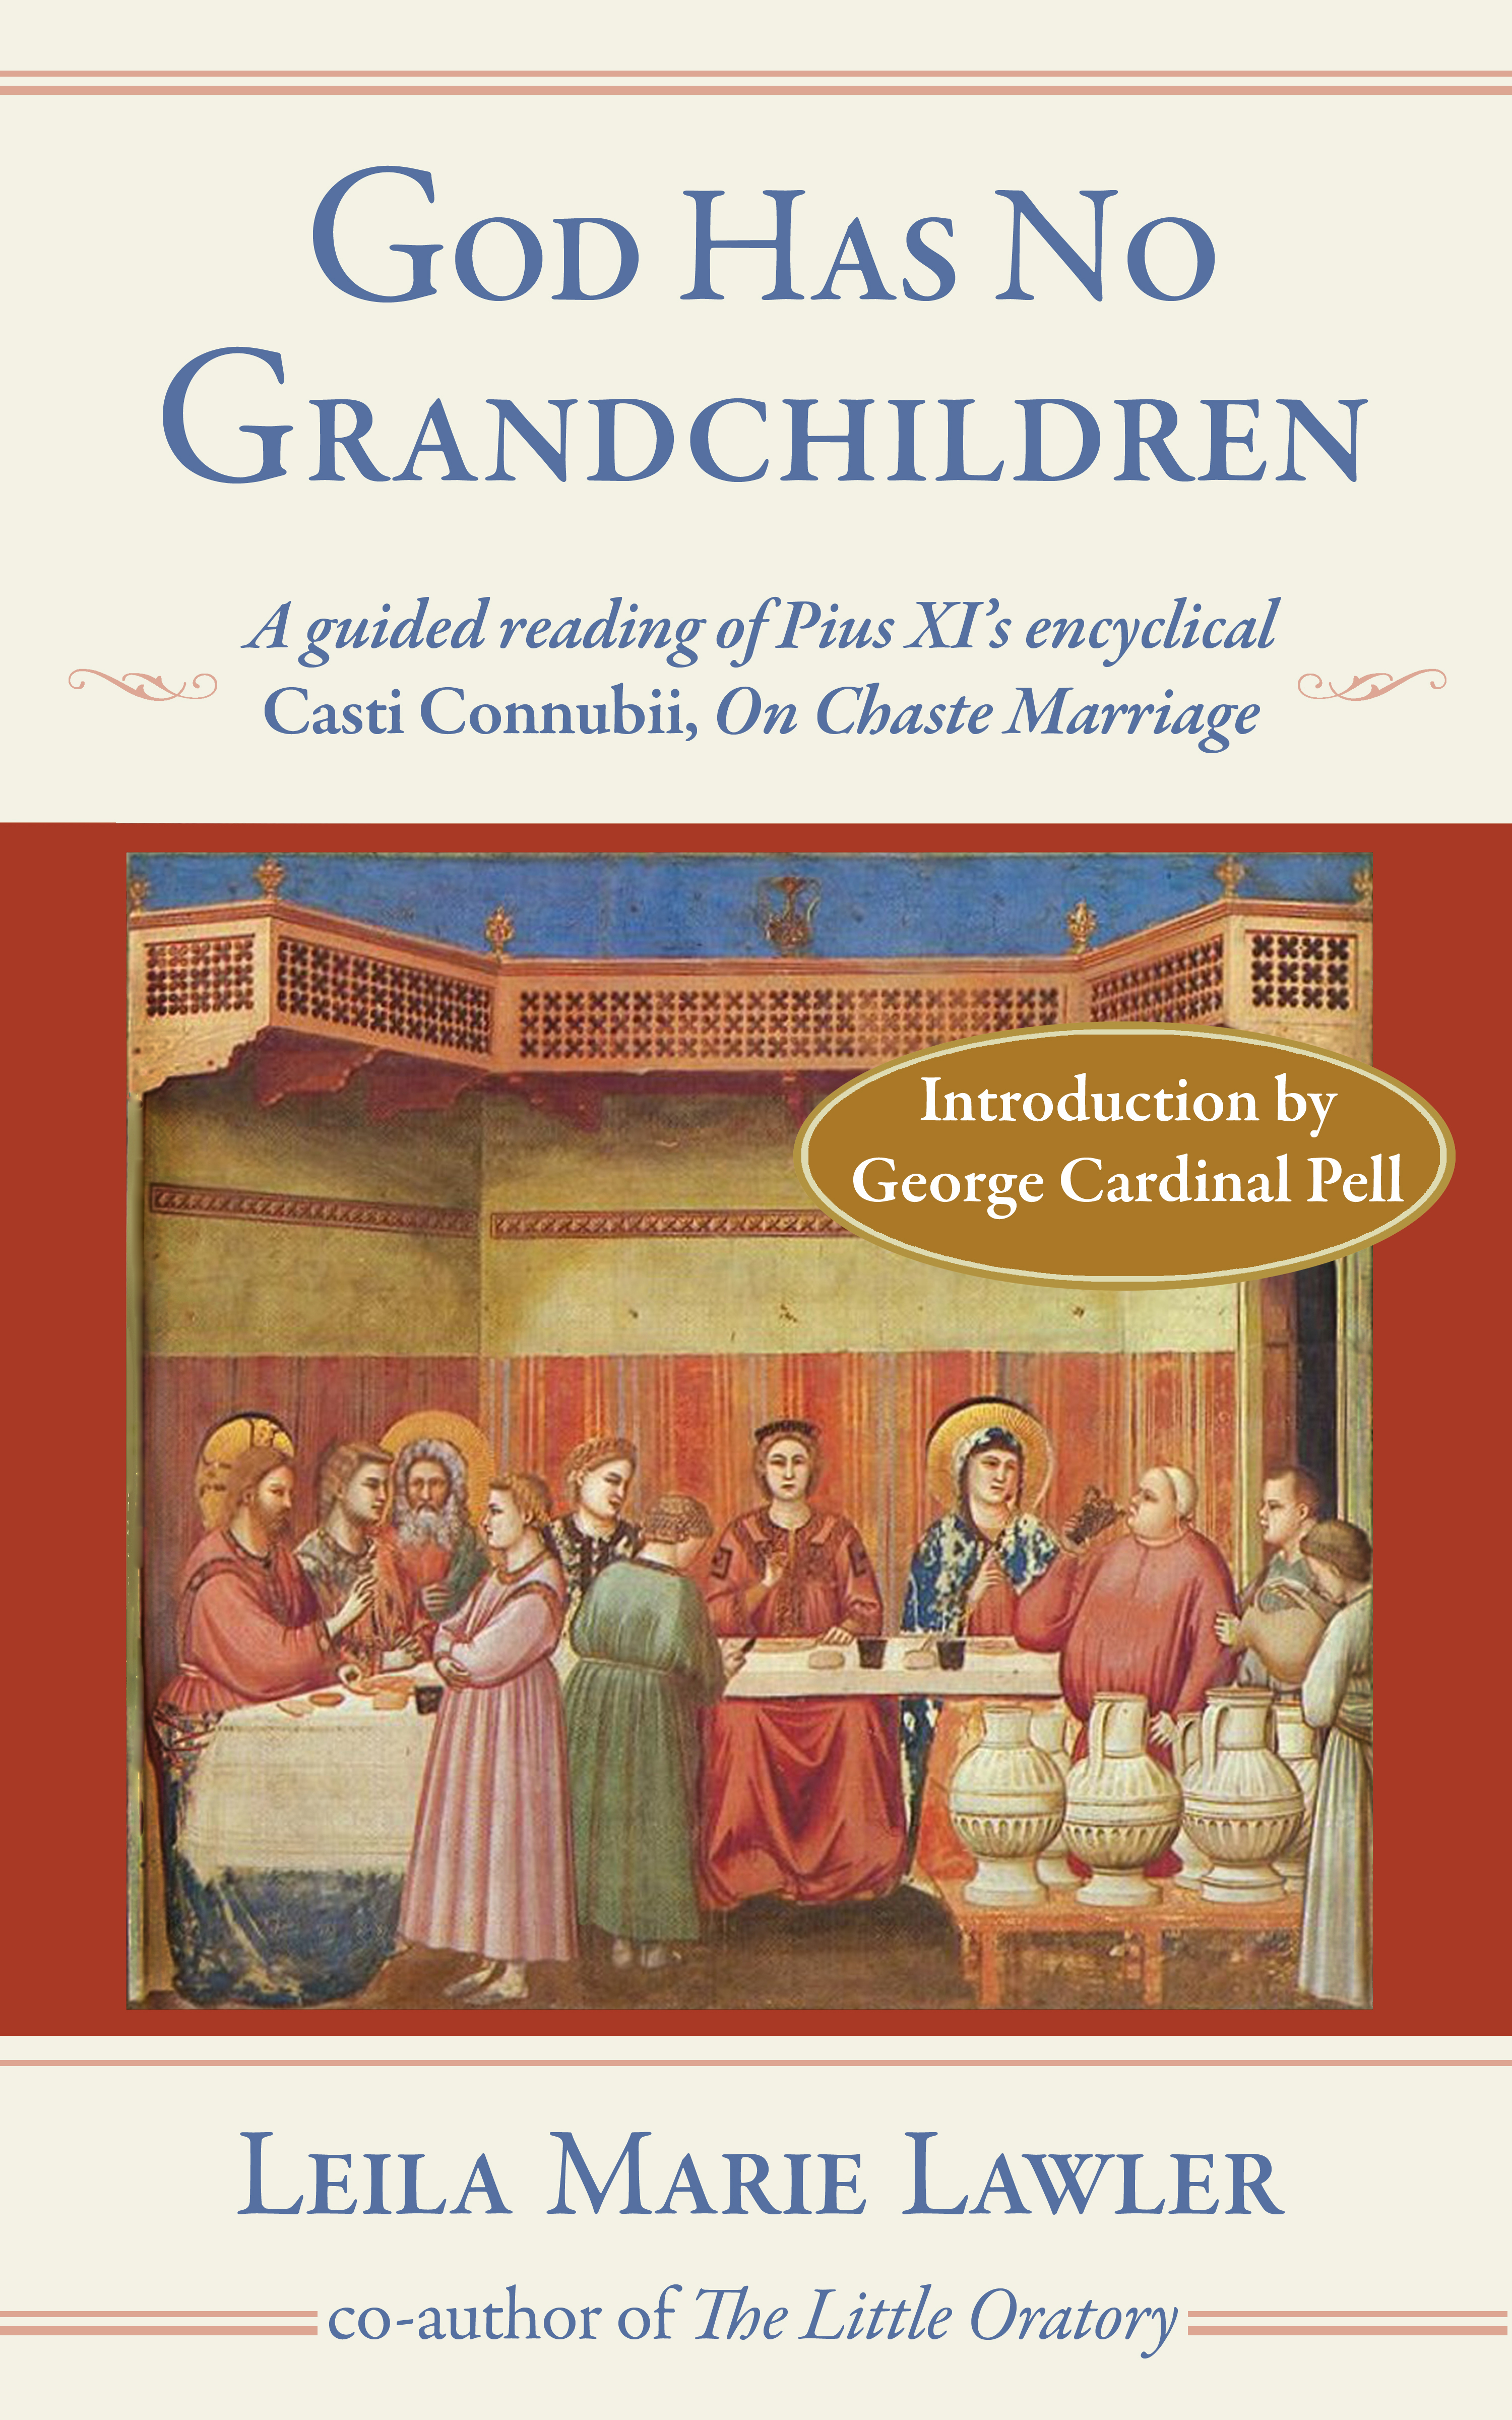 God Has No Grandchildren: A guided reading of Pius XI's encyclical Casti Connubii, On Chaste Marriage